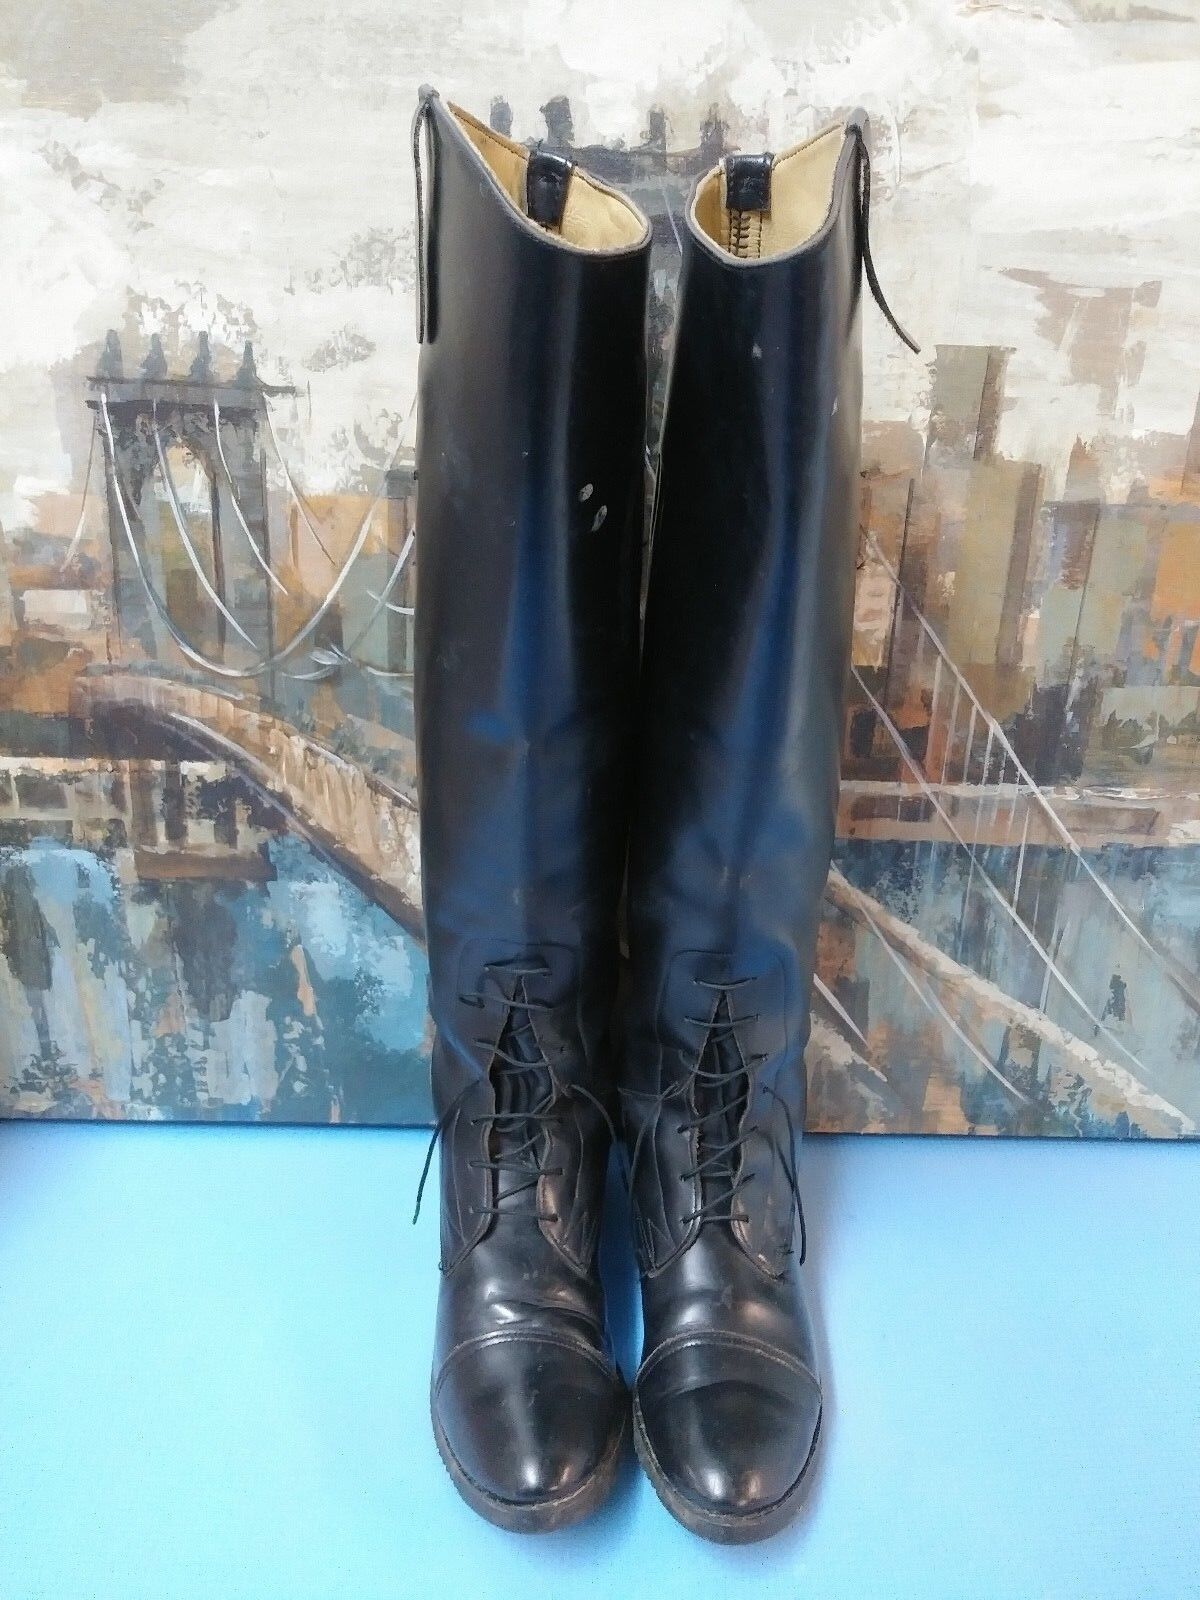 Essex Magic damen R590 Leather Long Riding Stiefel Stiefel Stiefel 6.5 M c94cb0